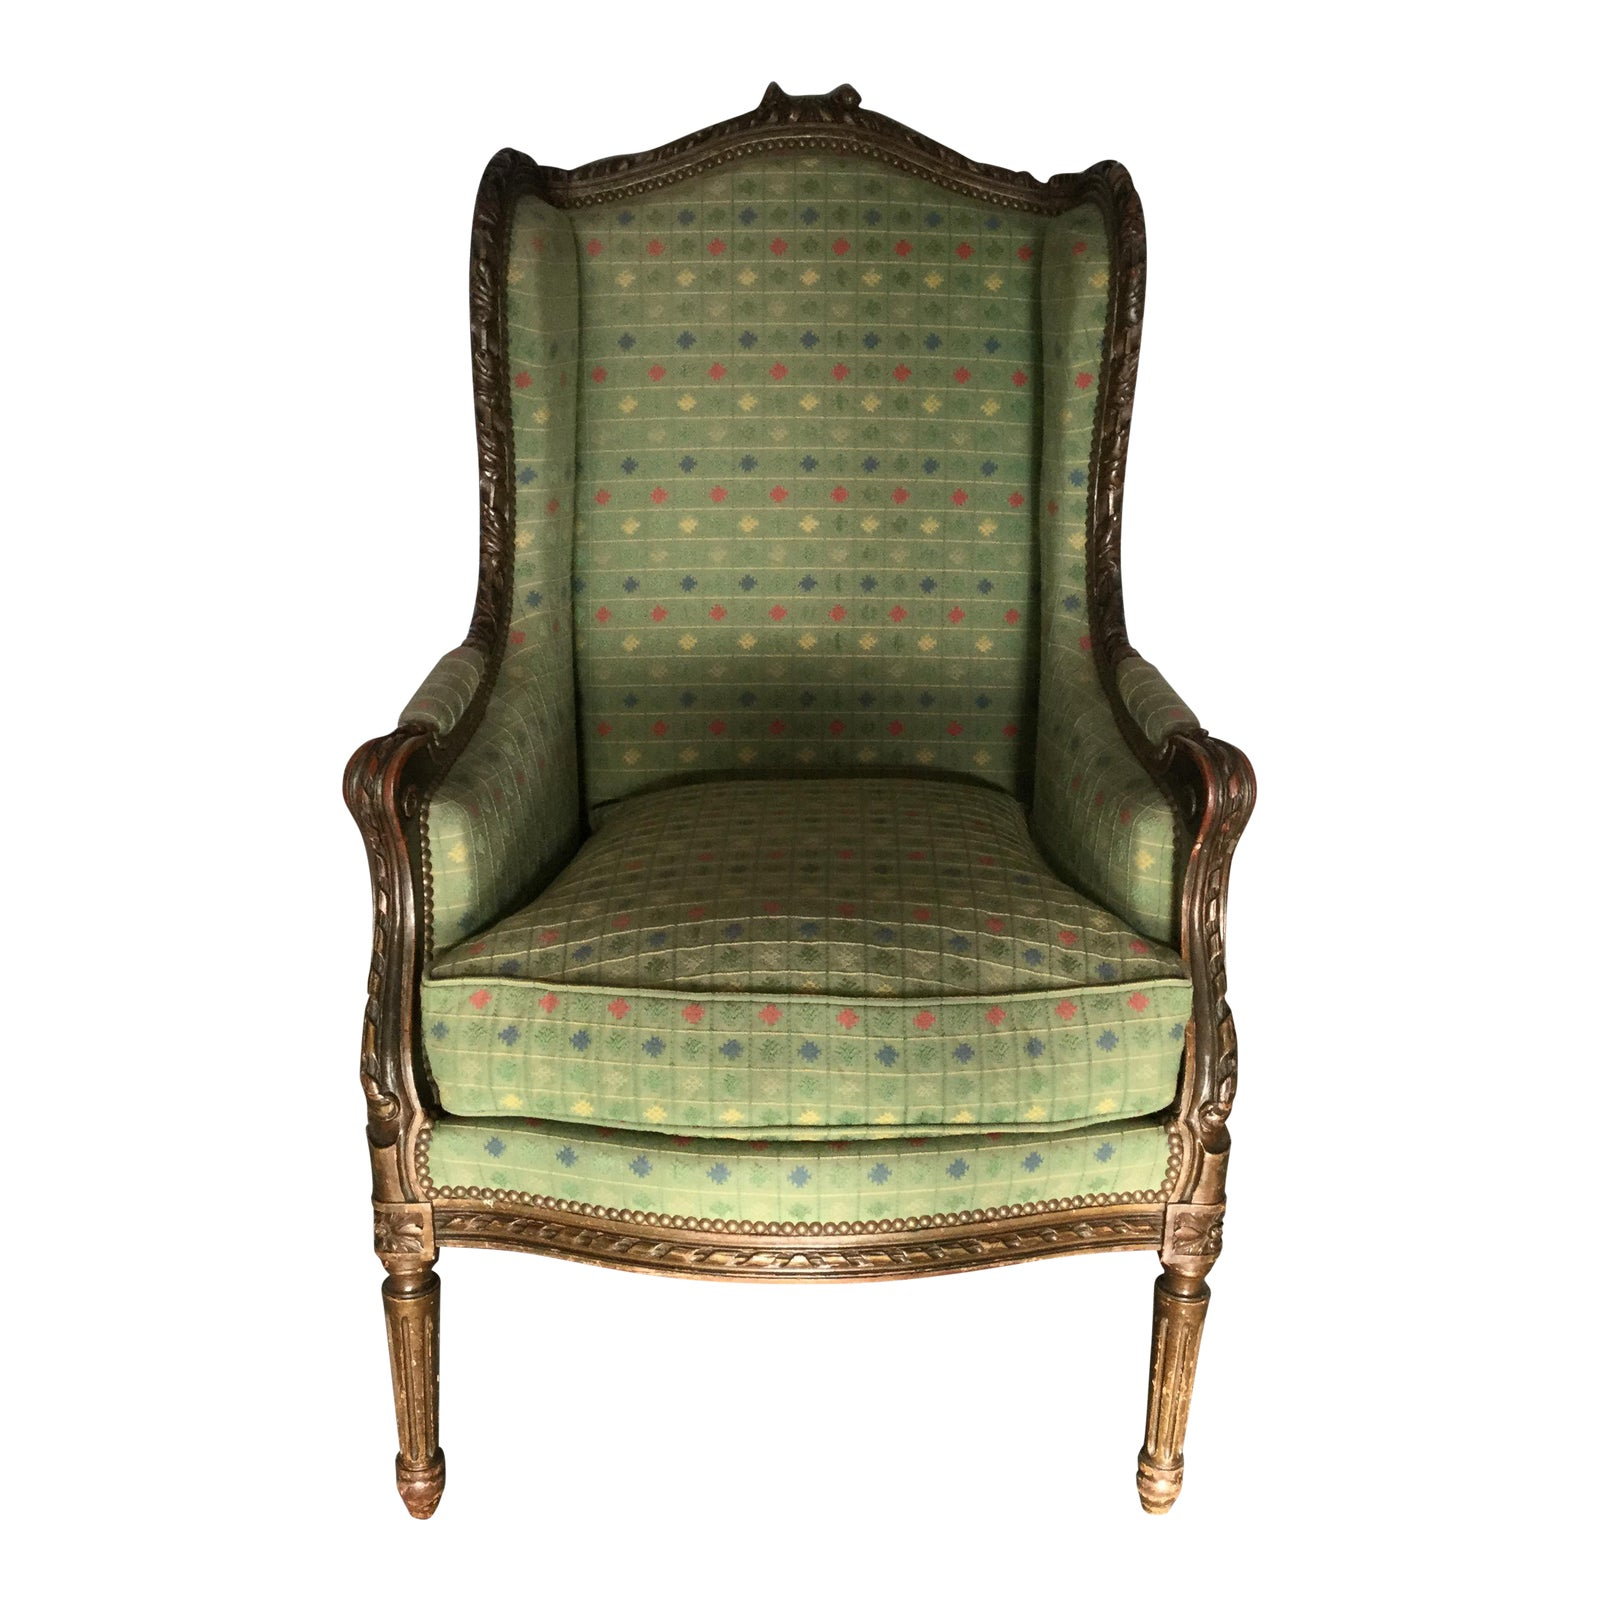 antique french louis xvi style bergere chairish. Black Bedroom Furniture Sets. Home Design Ideas